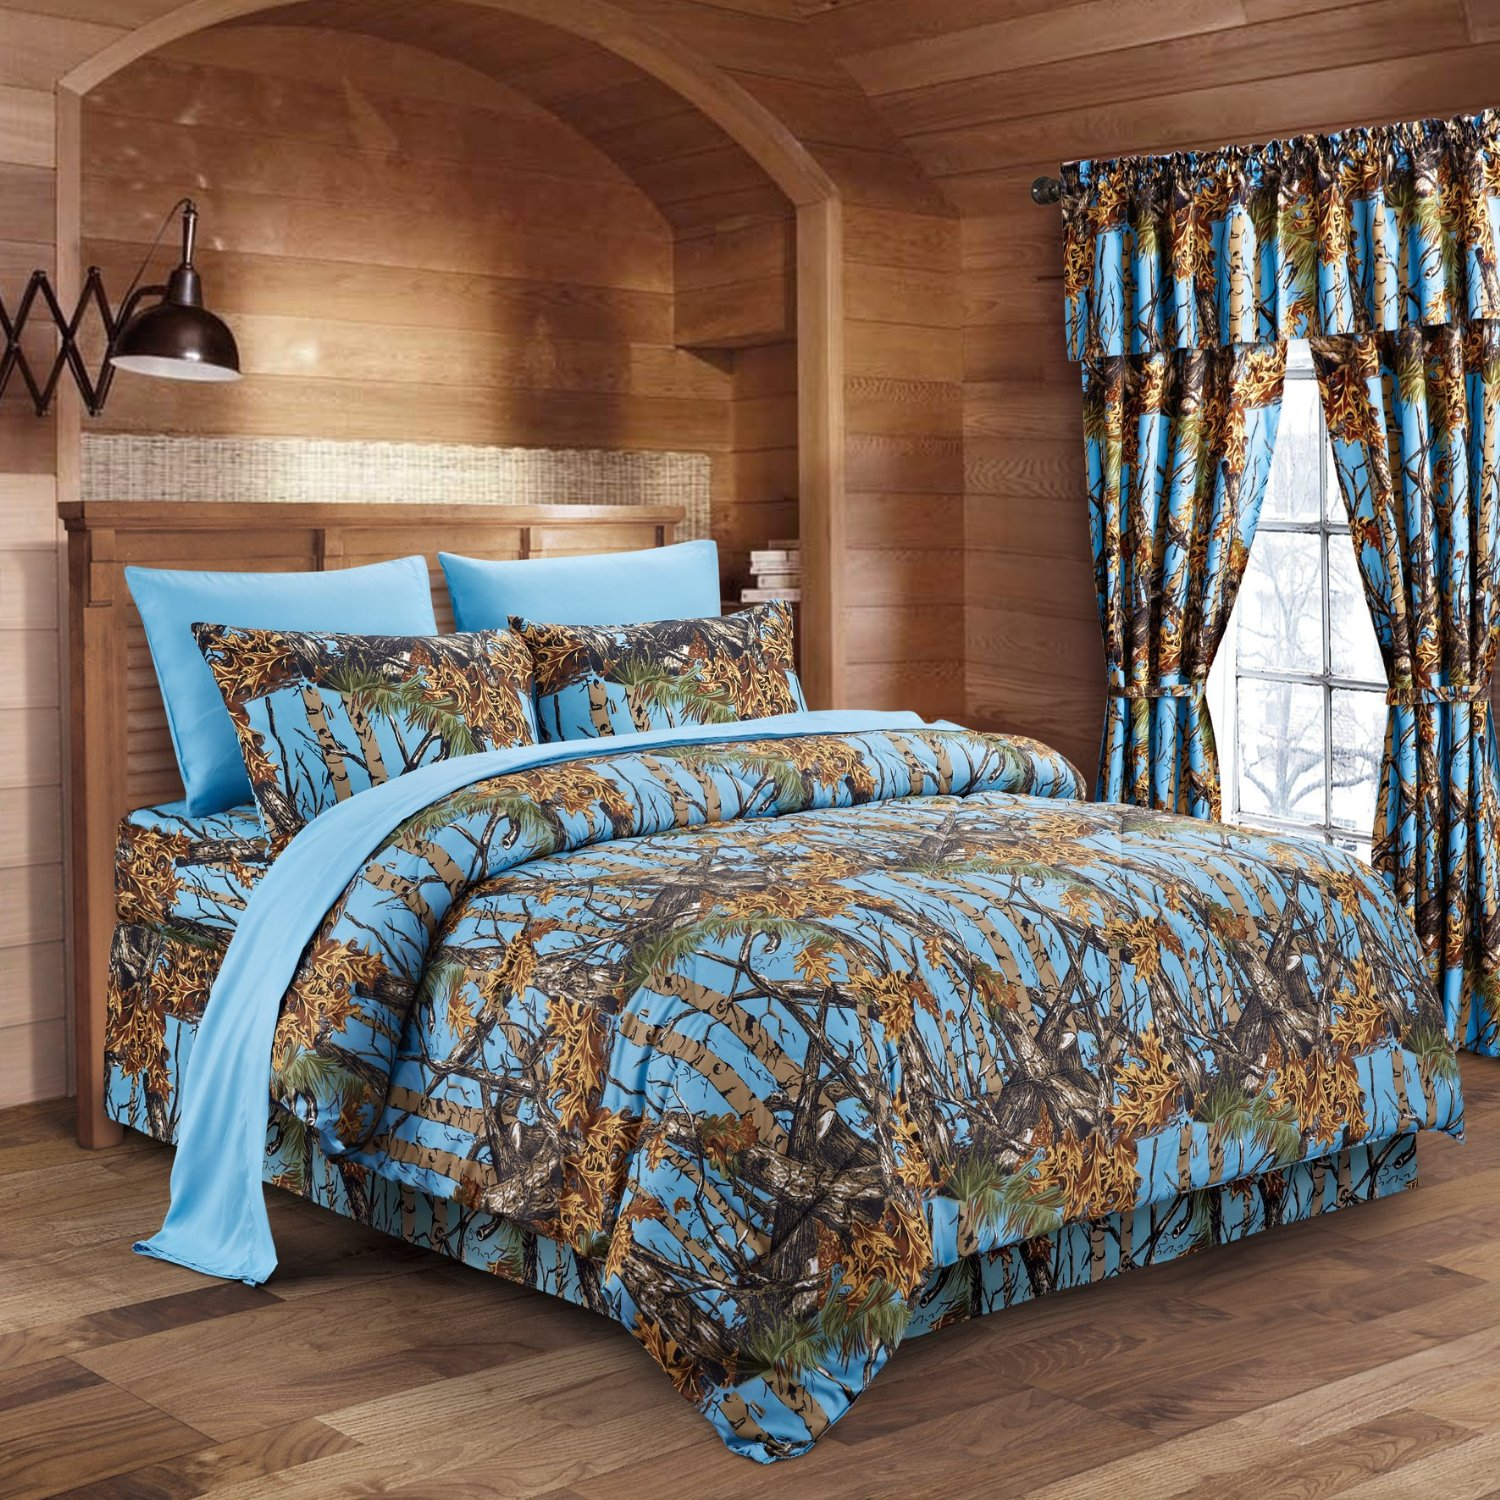 Regal Comfort 8pc Full Size Woods Powder Blue Camouflage Premium Comforter, Sheet, Pillowcases,and Bed Skirt Set Camo Bedding Set For Hunters Cabin or Rustic Lodge Teens Boys and Girls